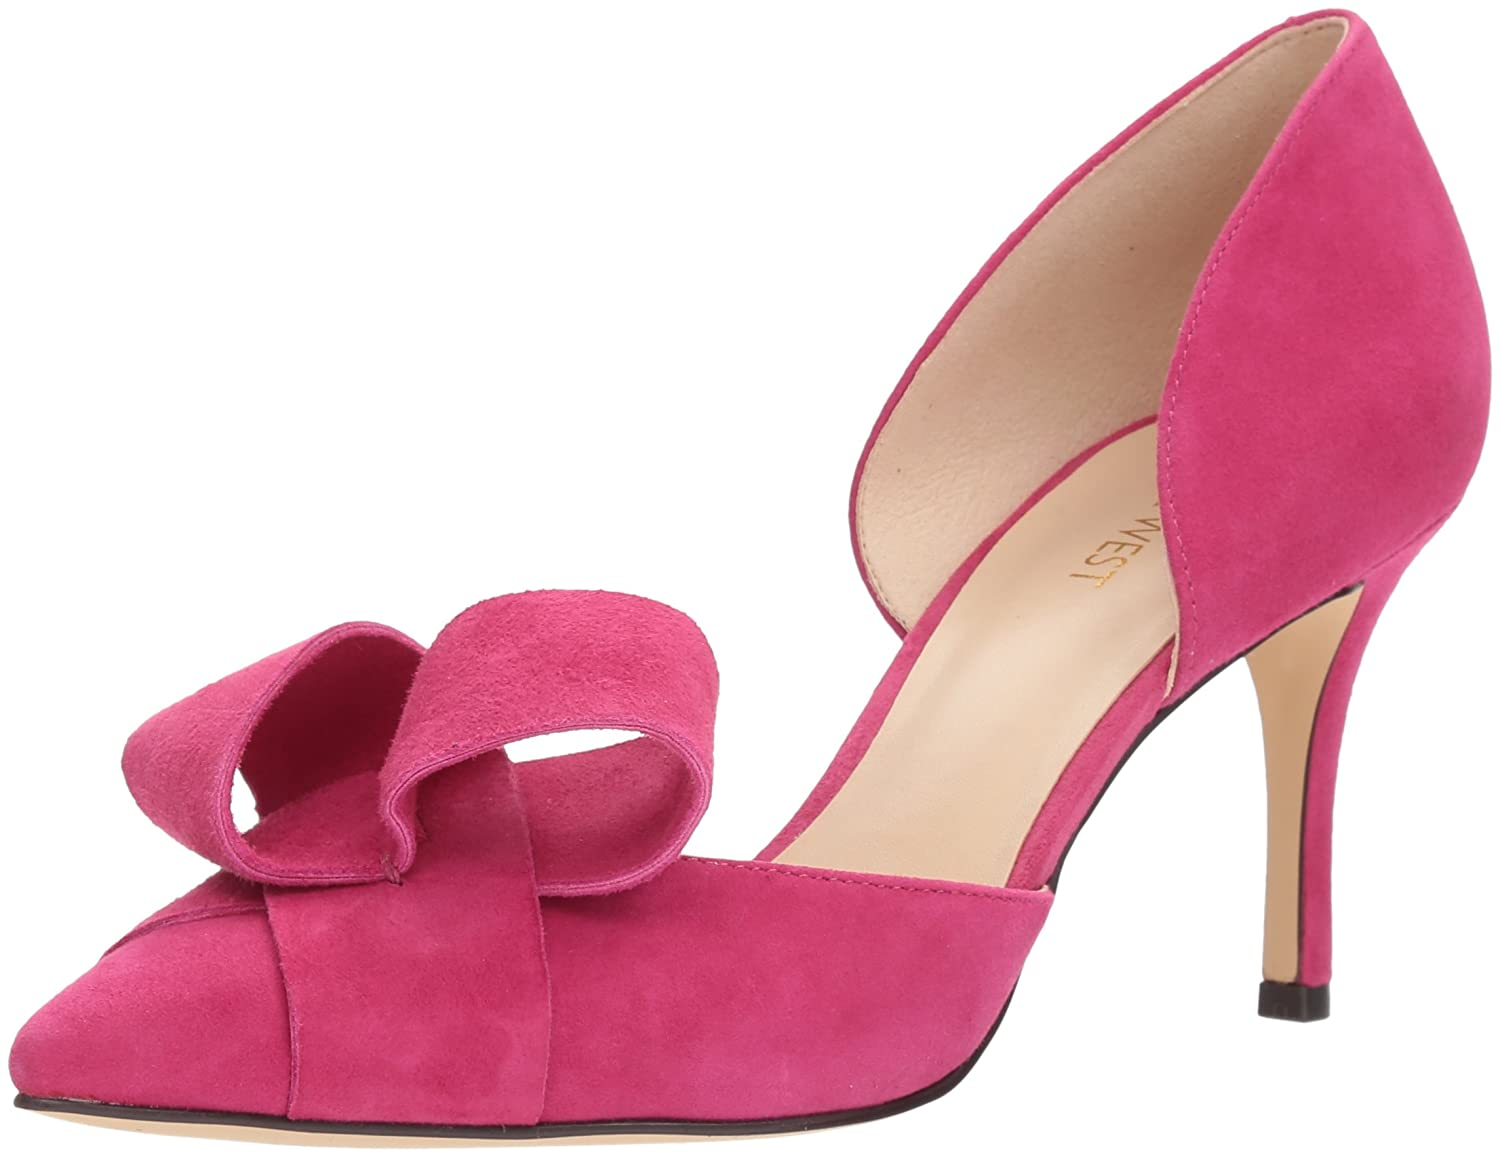 Nine West Women's Mcfally Suede Pump B071FTPB8G 8 B(M) US|Pink Suede